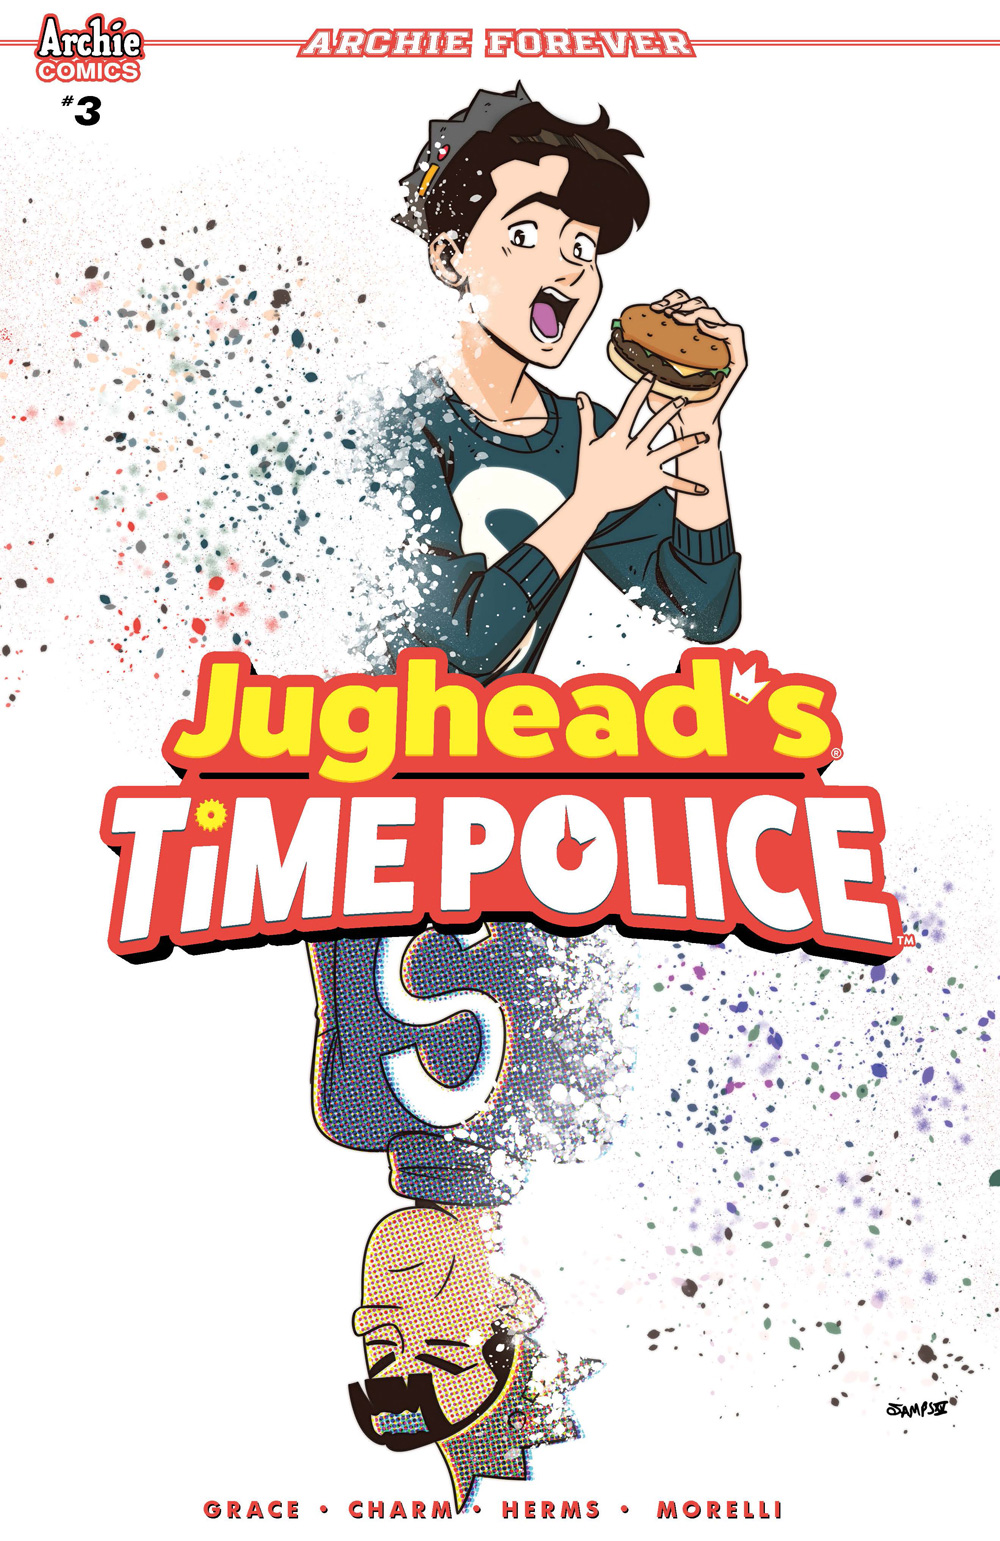 Variant cover for Jughead's Time Police #3.